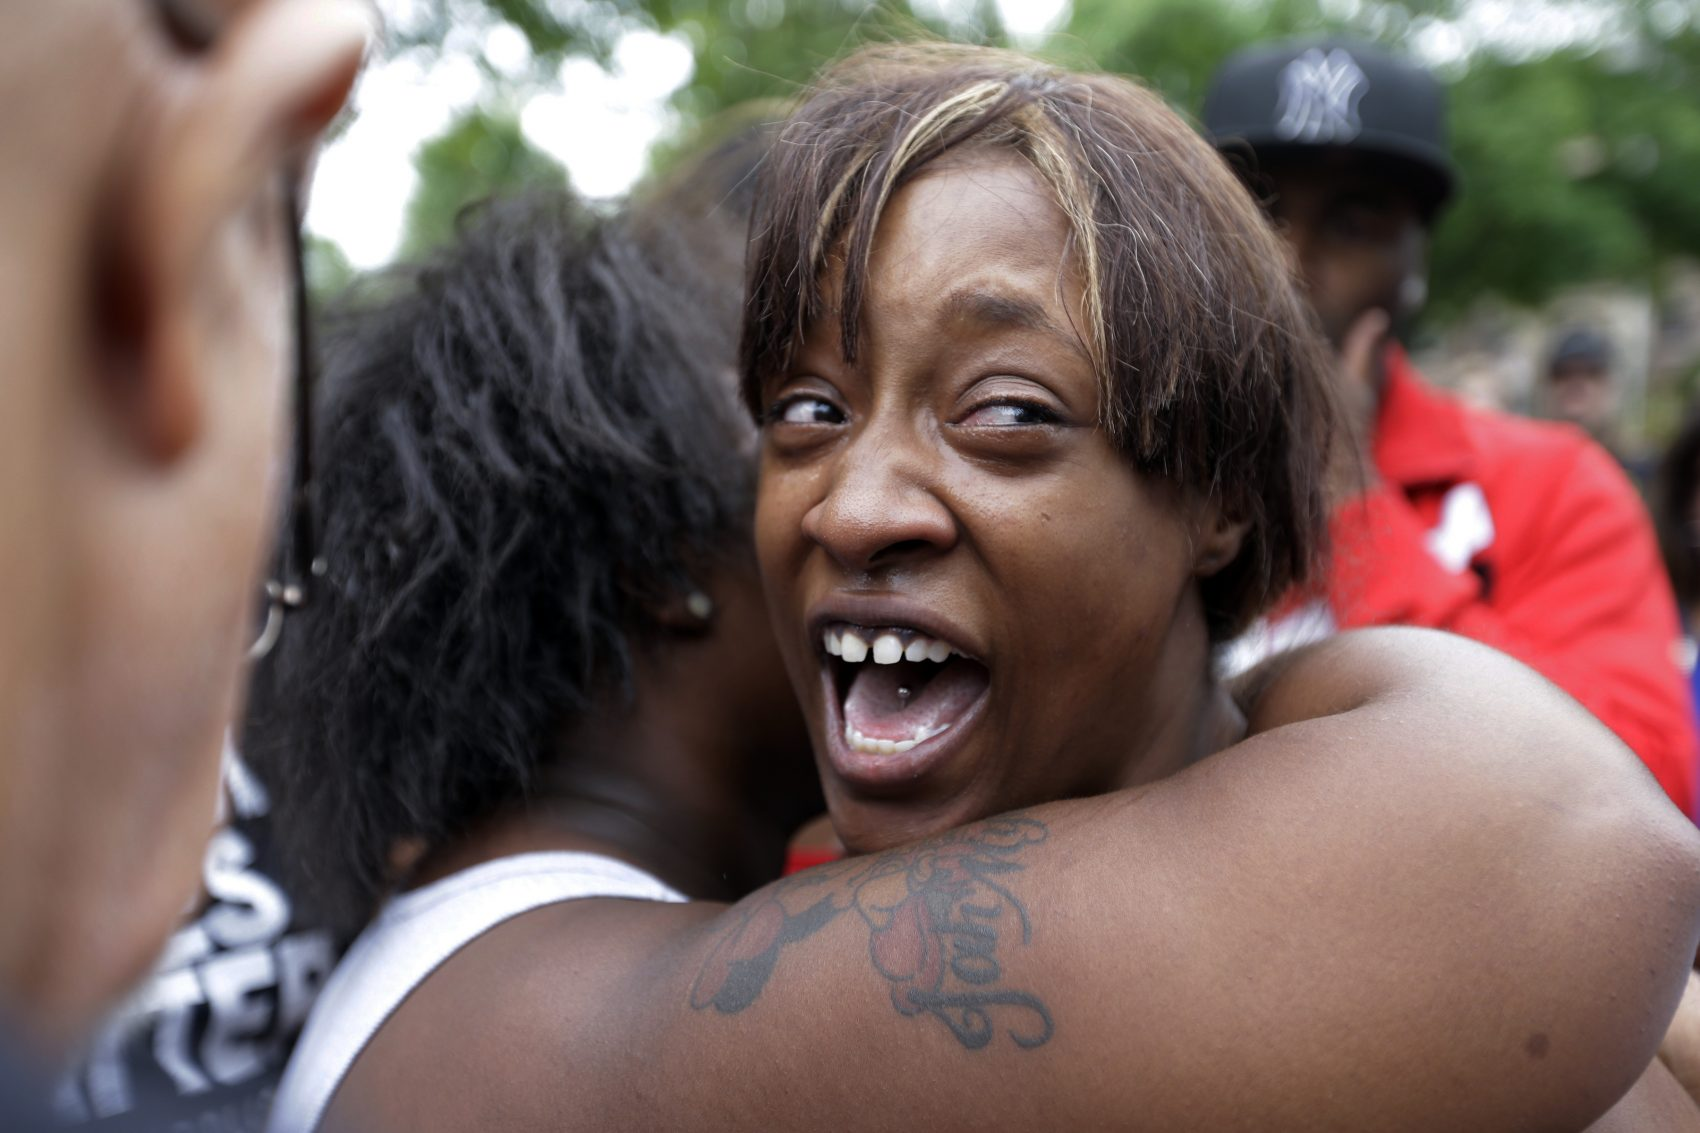 Diamond Reynolds, the girlfriend of Philando Castile, is consoled as she talks about his shooting death with protesters and media outside the governor's residence in St. Paul, Minn. (Jim Mone/AP)